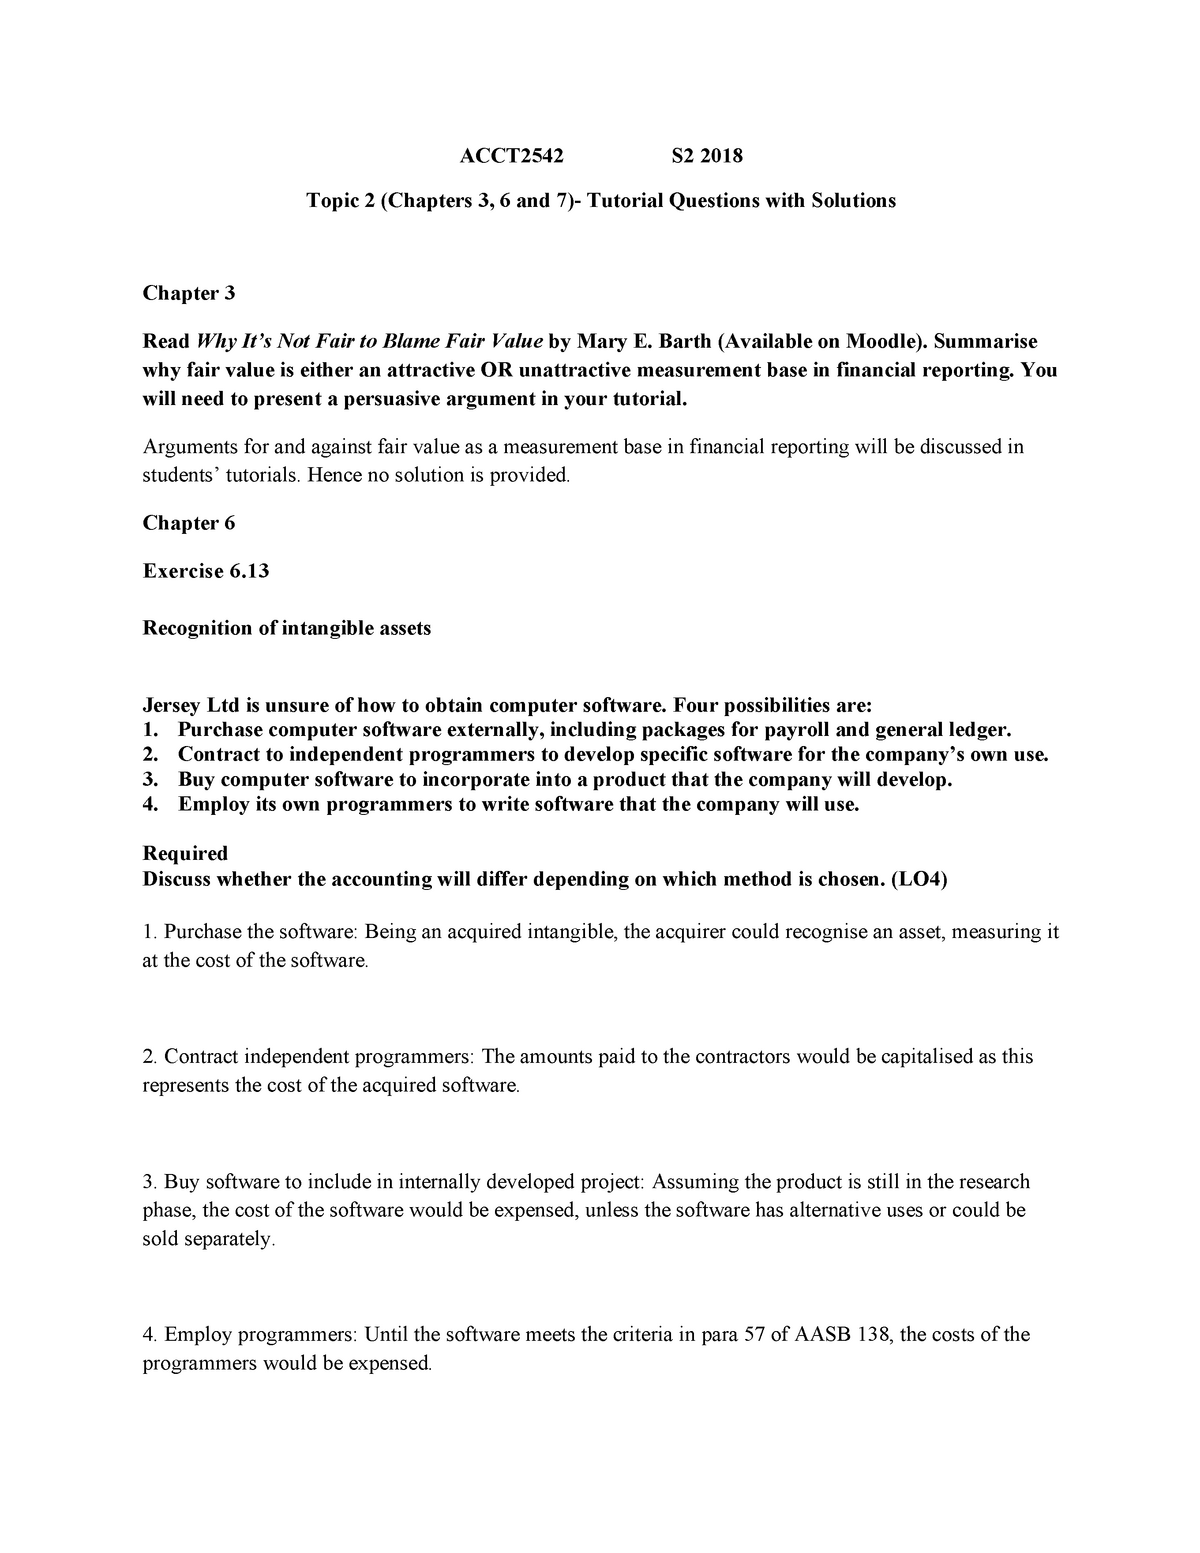 aasb 138 intangible assets 2019